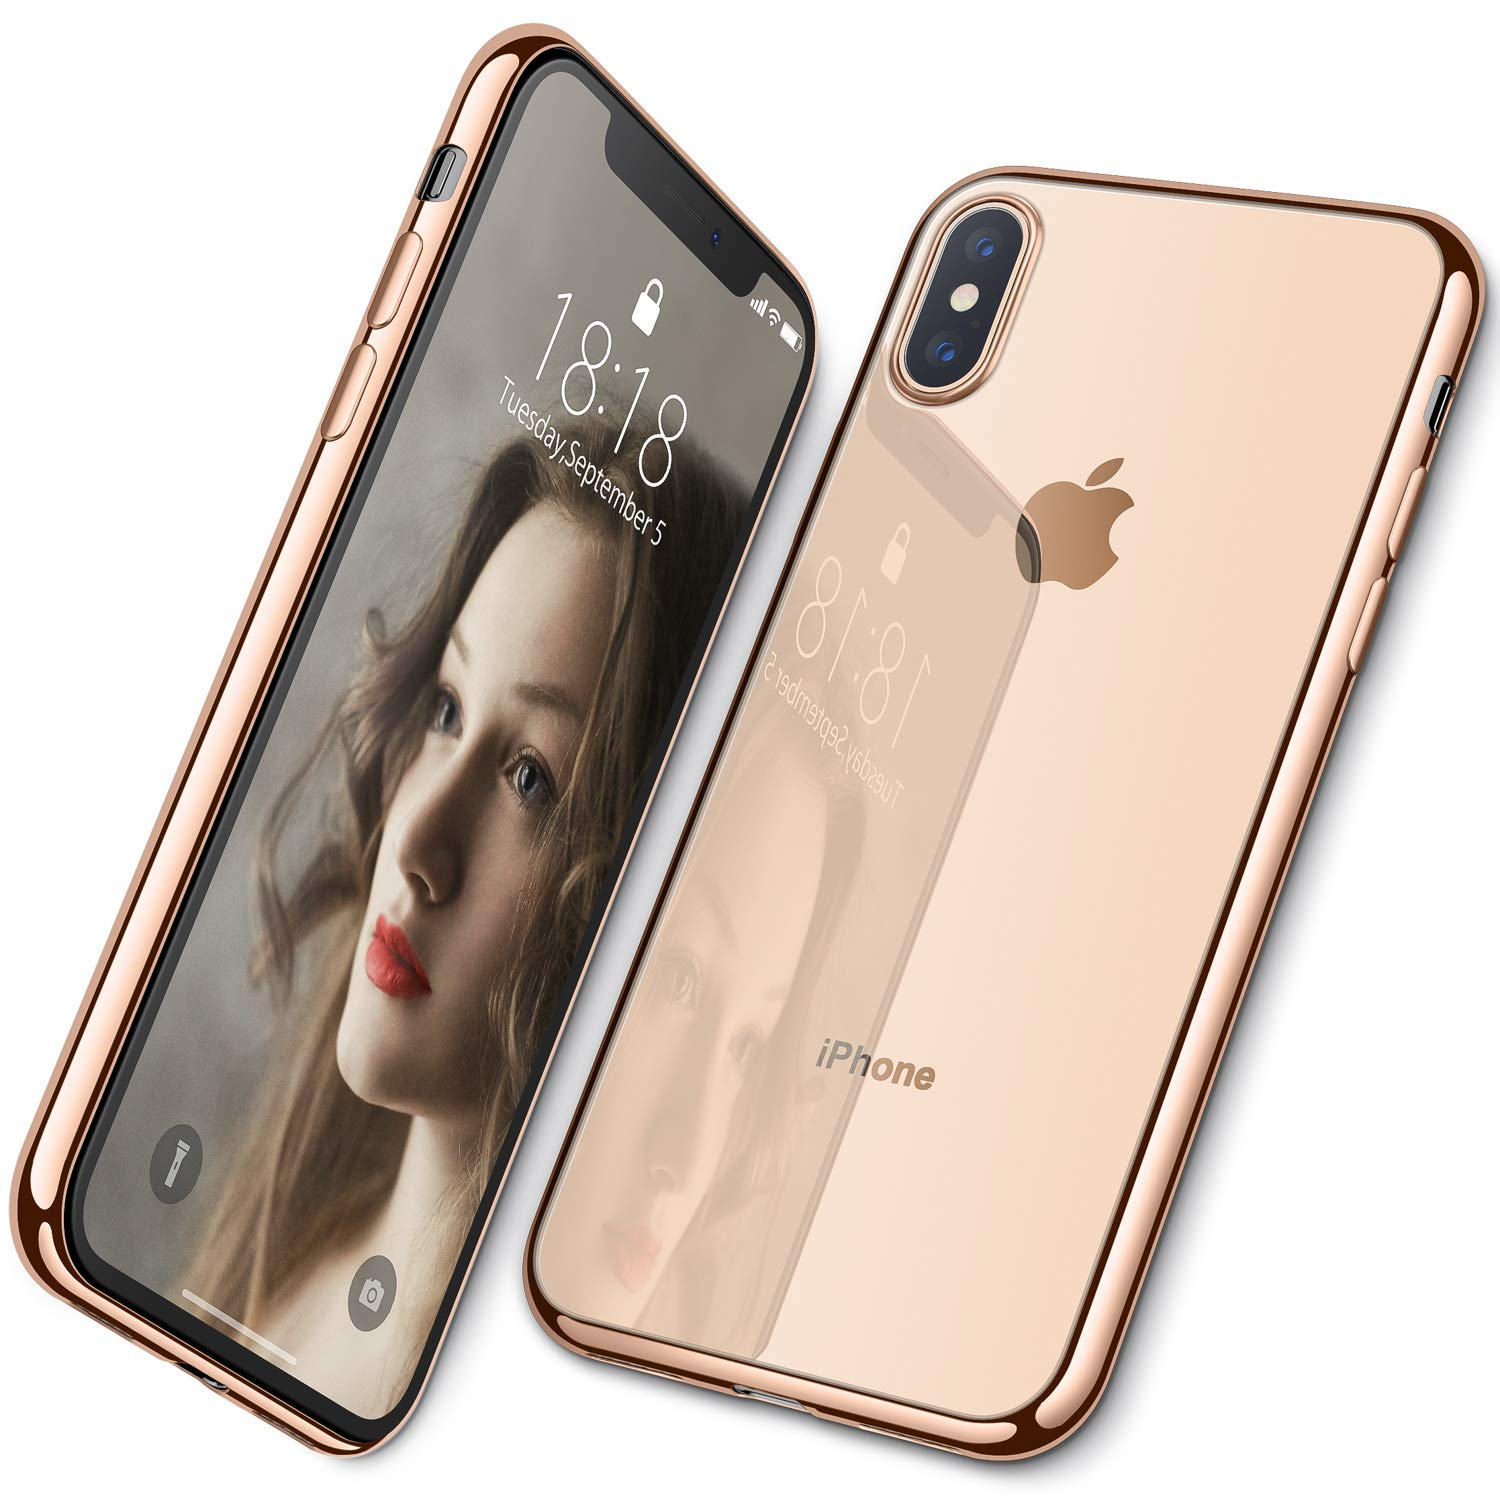 For <font><b>iPhone</b></font> <font><b>XS</b></font> Max <font><b>XS</b></font> XR <font><b>Case</b></font>,WEFOR Ultra Slim Thin Clear Soft Premium Flexible Chrome <font><b>Bumper</b></font> Transparent TPU Back Plate Cover image